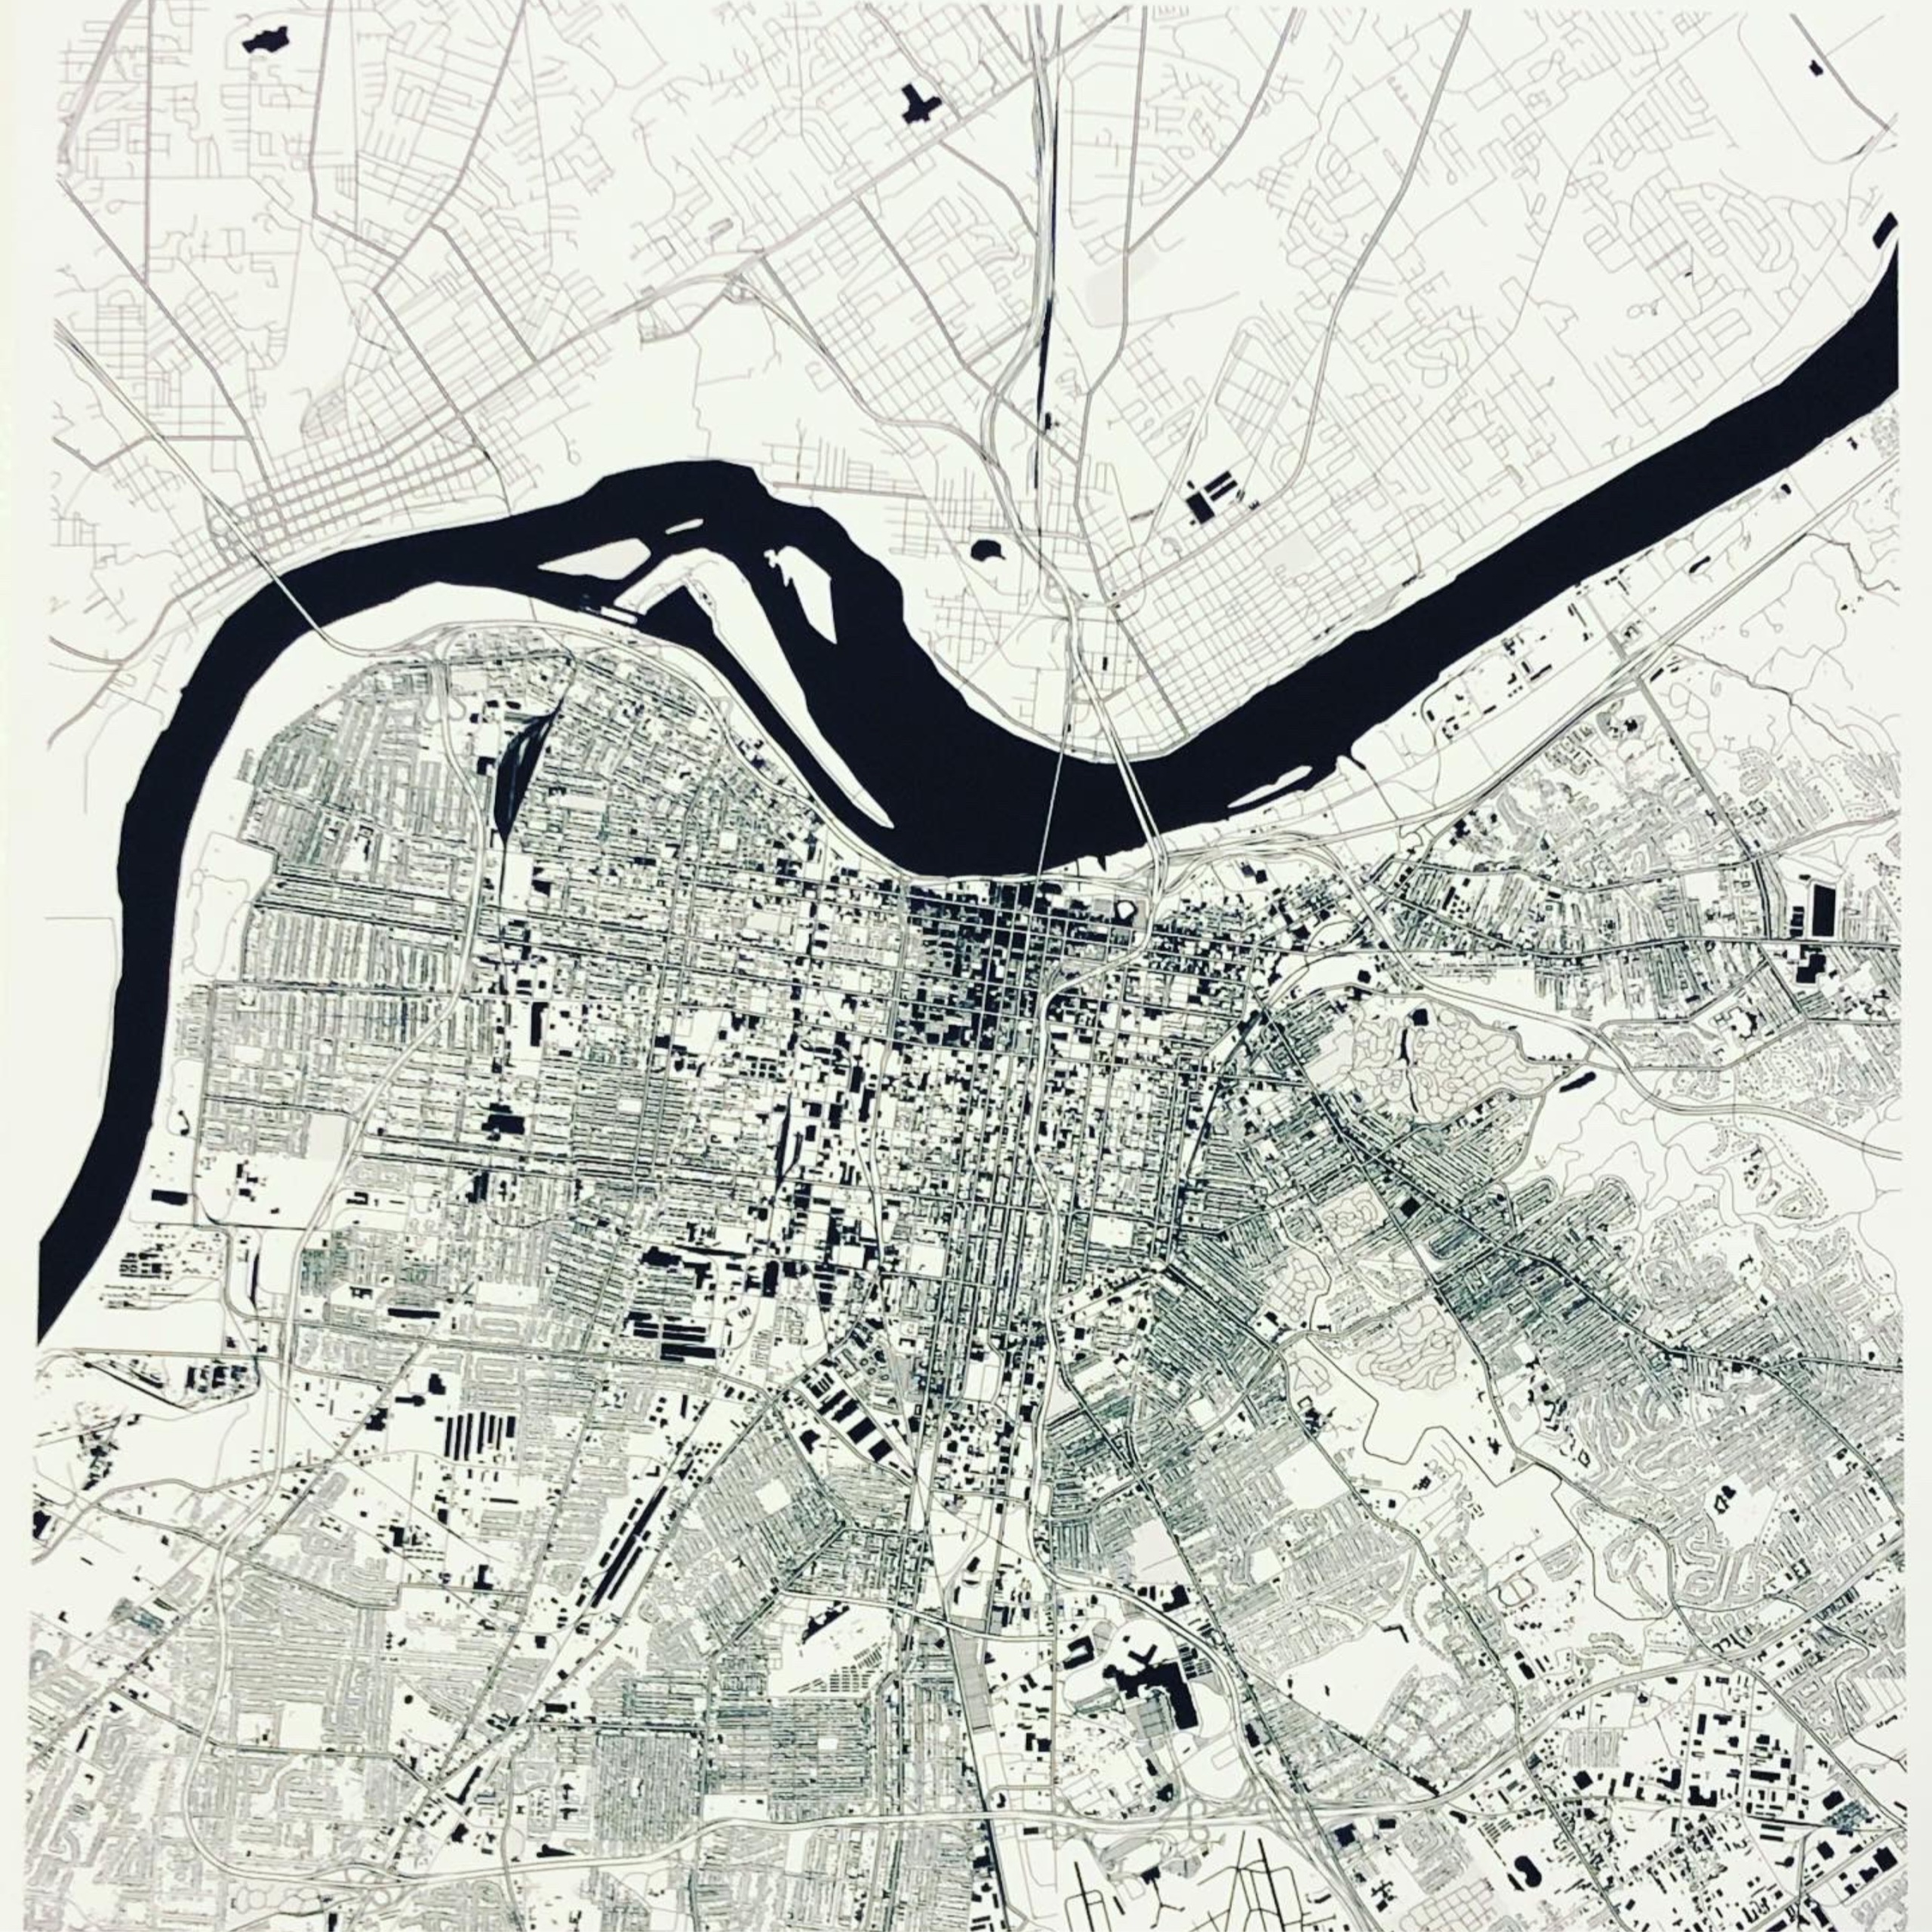 LOUISVILLE Map Black and White by Olivier Gratton Gagn